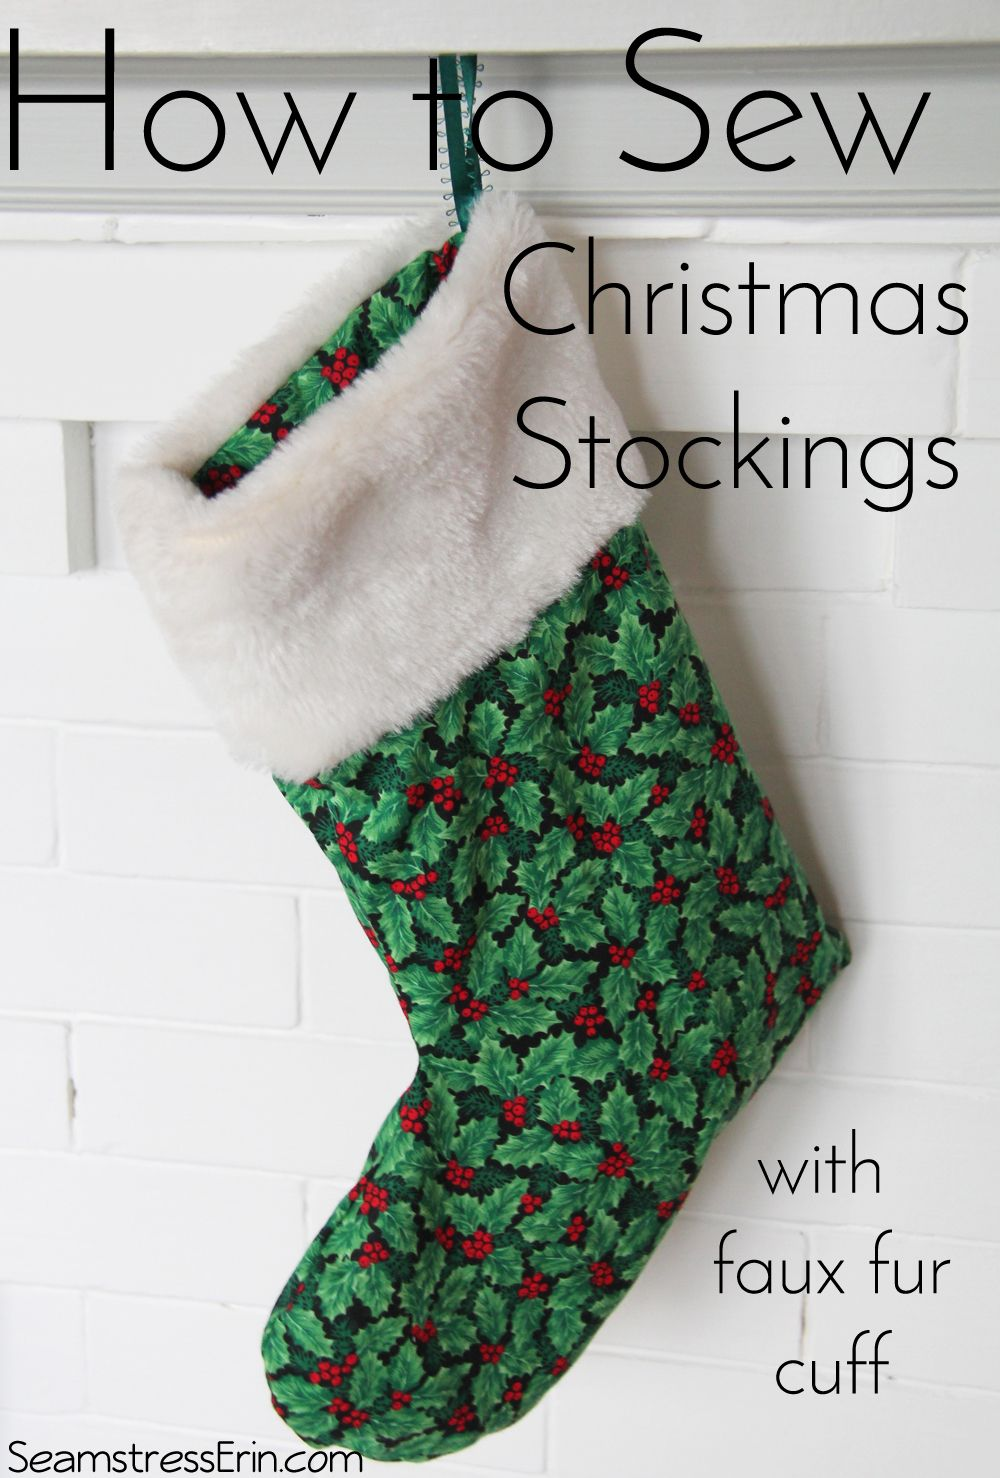 How To Sew Christmas Stockings With A Faux Fur Cuff Christmas